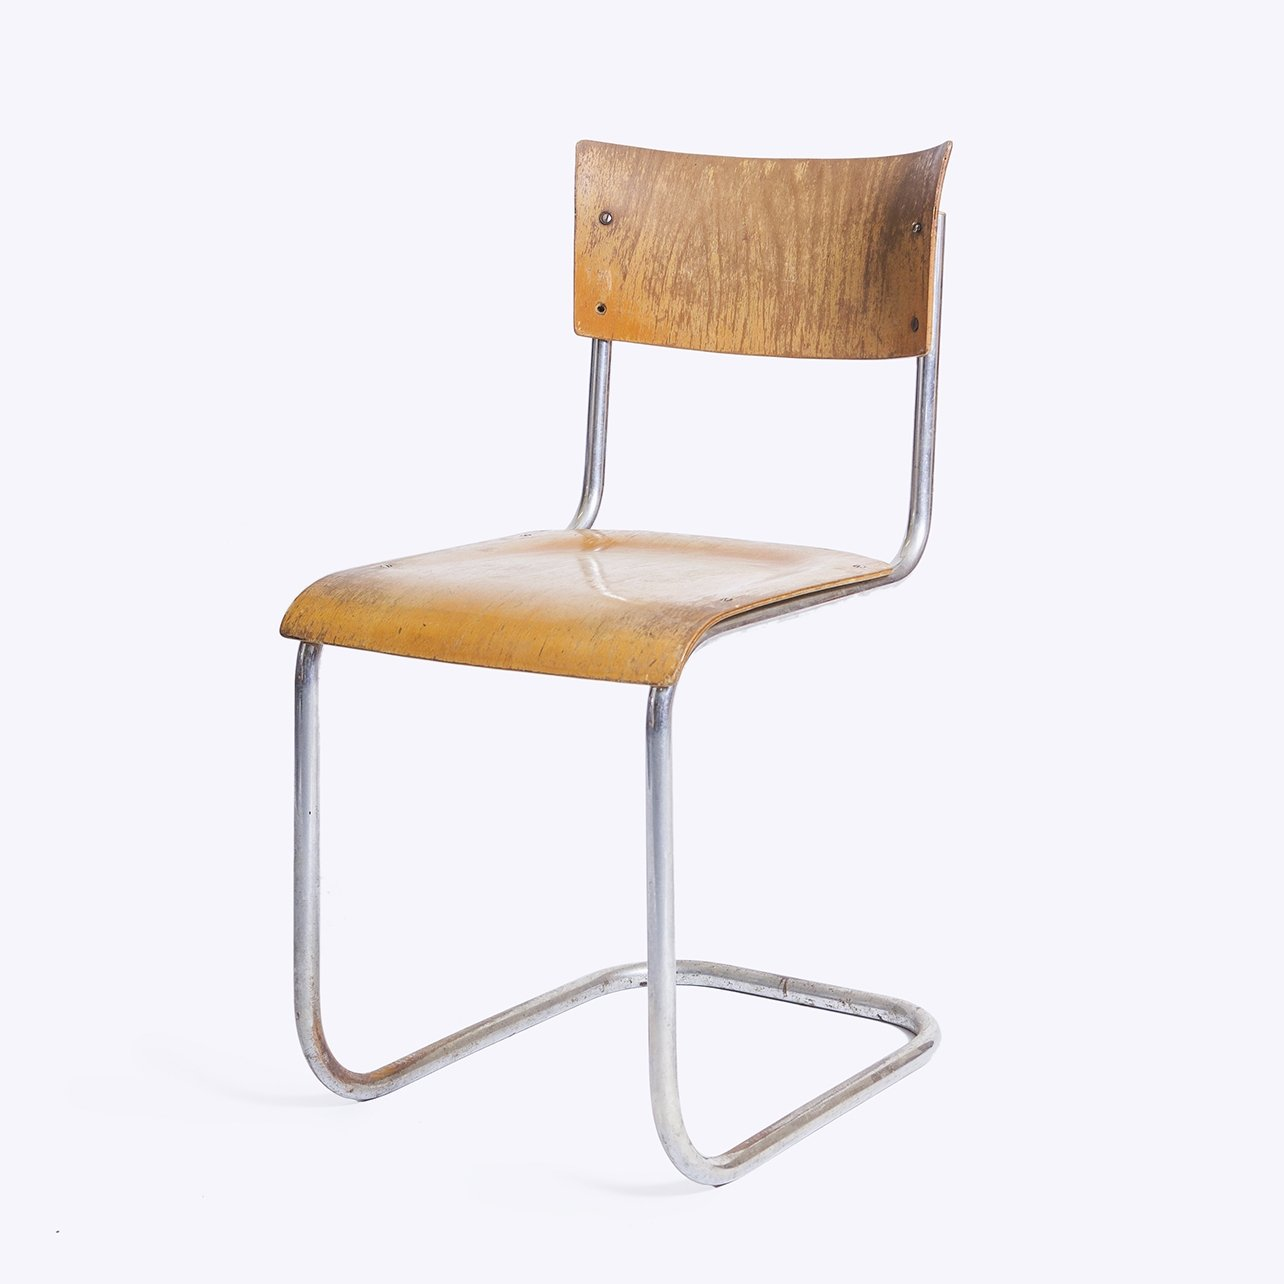 mart stam chair folding hanging rack 4 dinner chairs from the fifties by for kovona